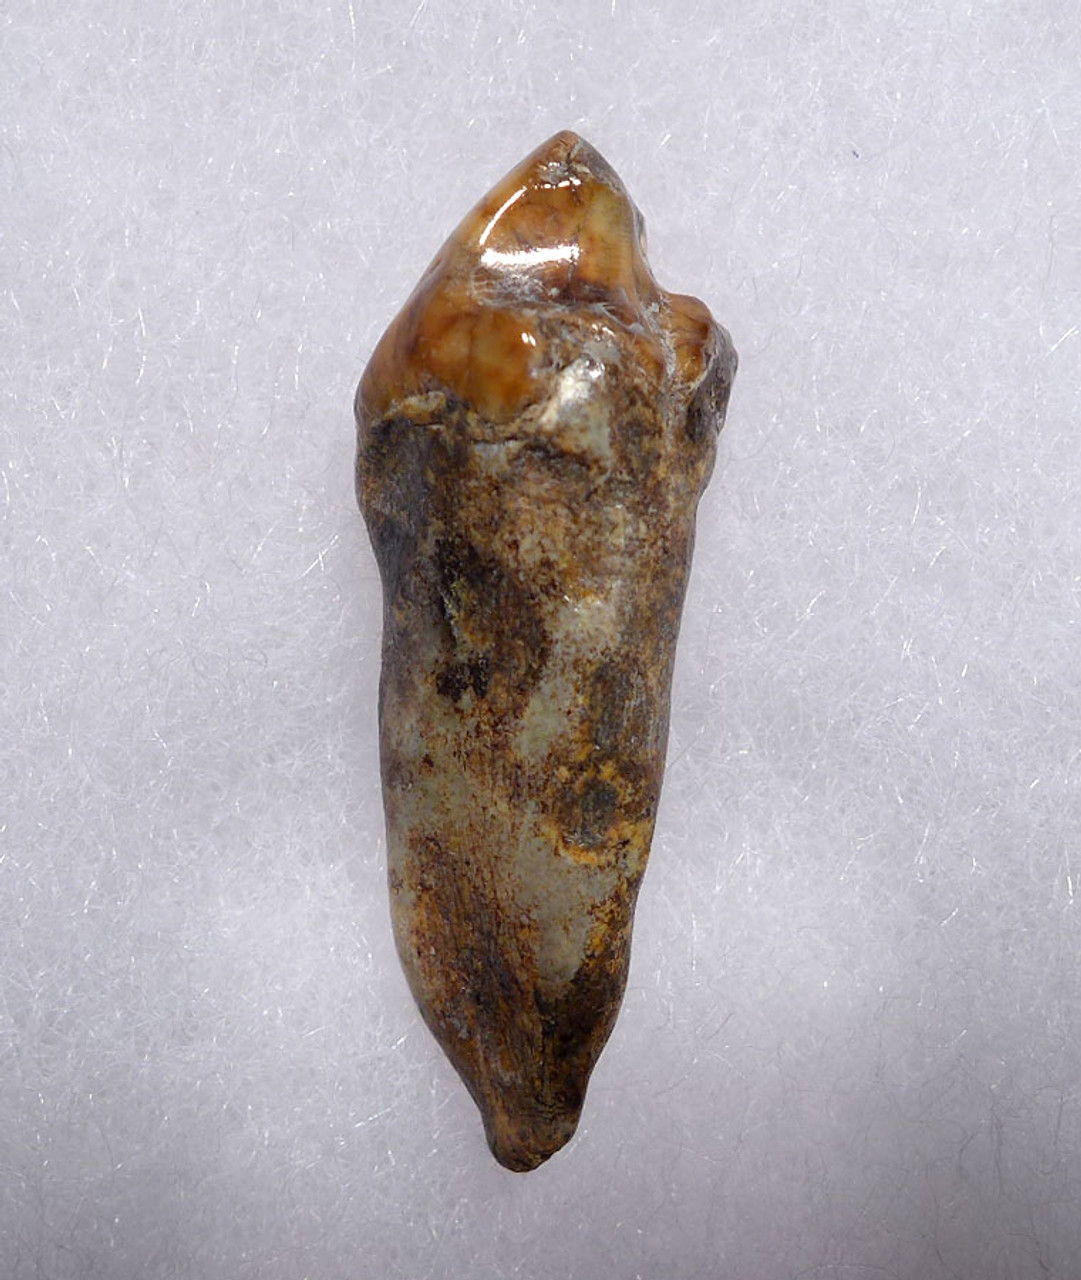 COLORFUL CAVE BEAR FOSSIL TOOTH WITH ROOT FROM THE FAMOUS DRACHENHOHLE DRAGONS CAVE IN AUSTRIA *CB015